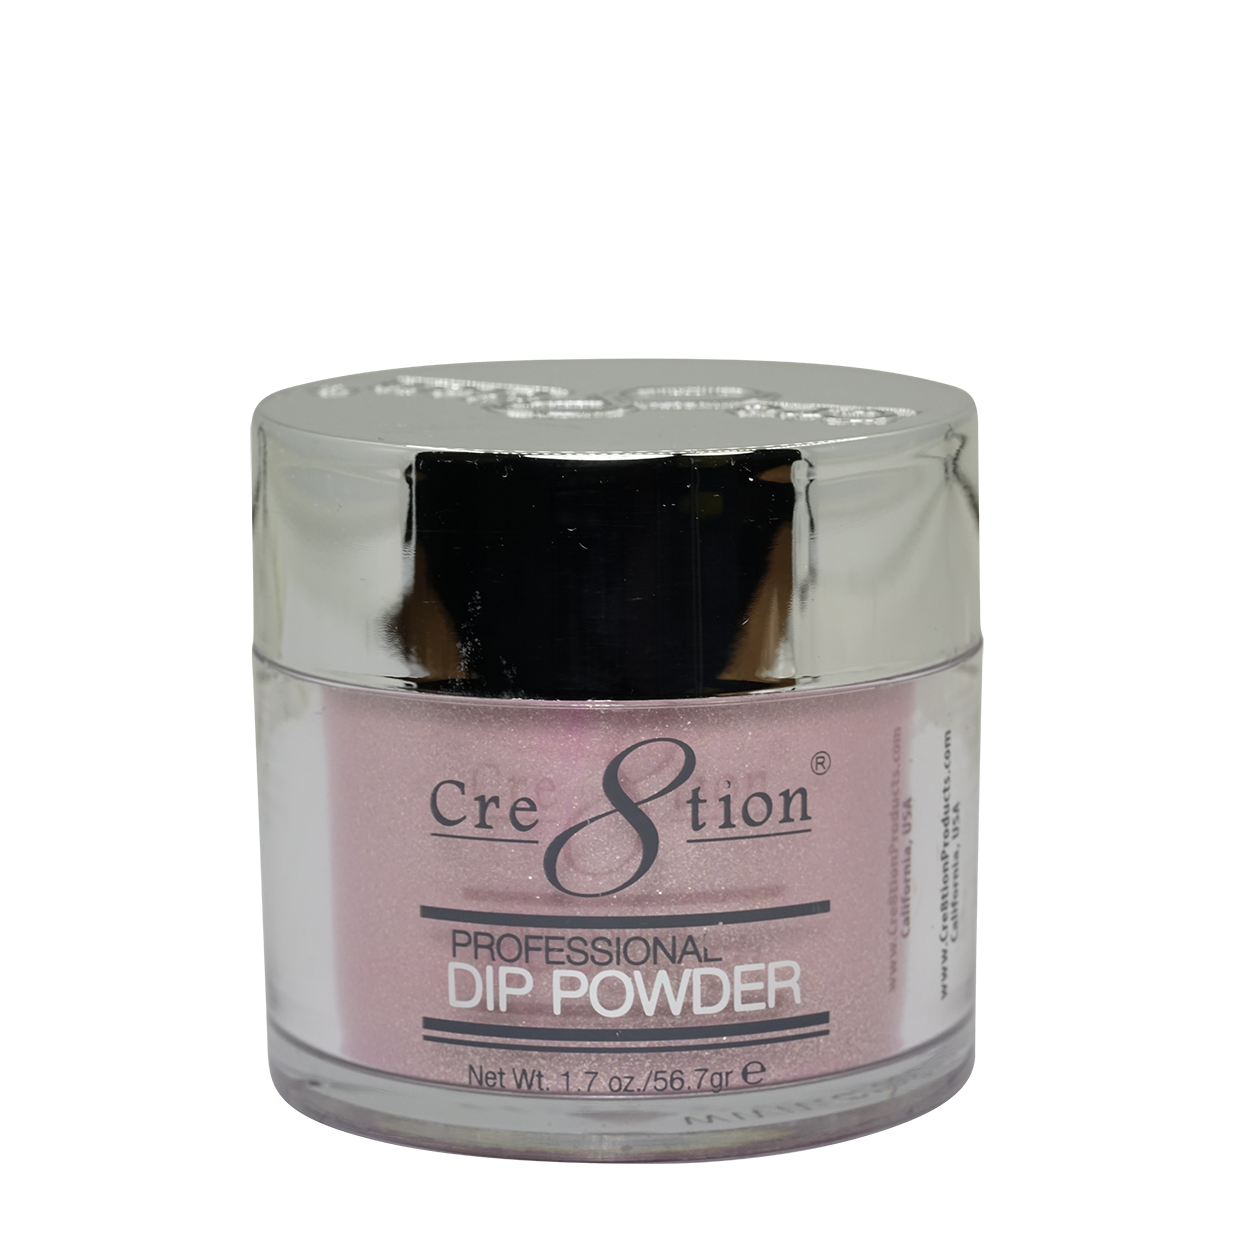 Cre8tion Matching Dip Powder 1.7oz 187 LOVE ME TENDER